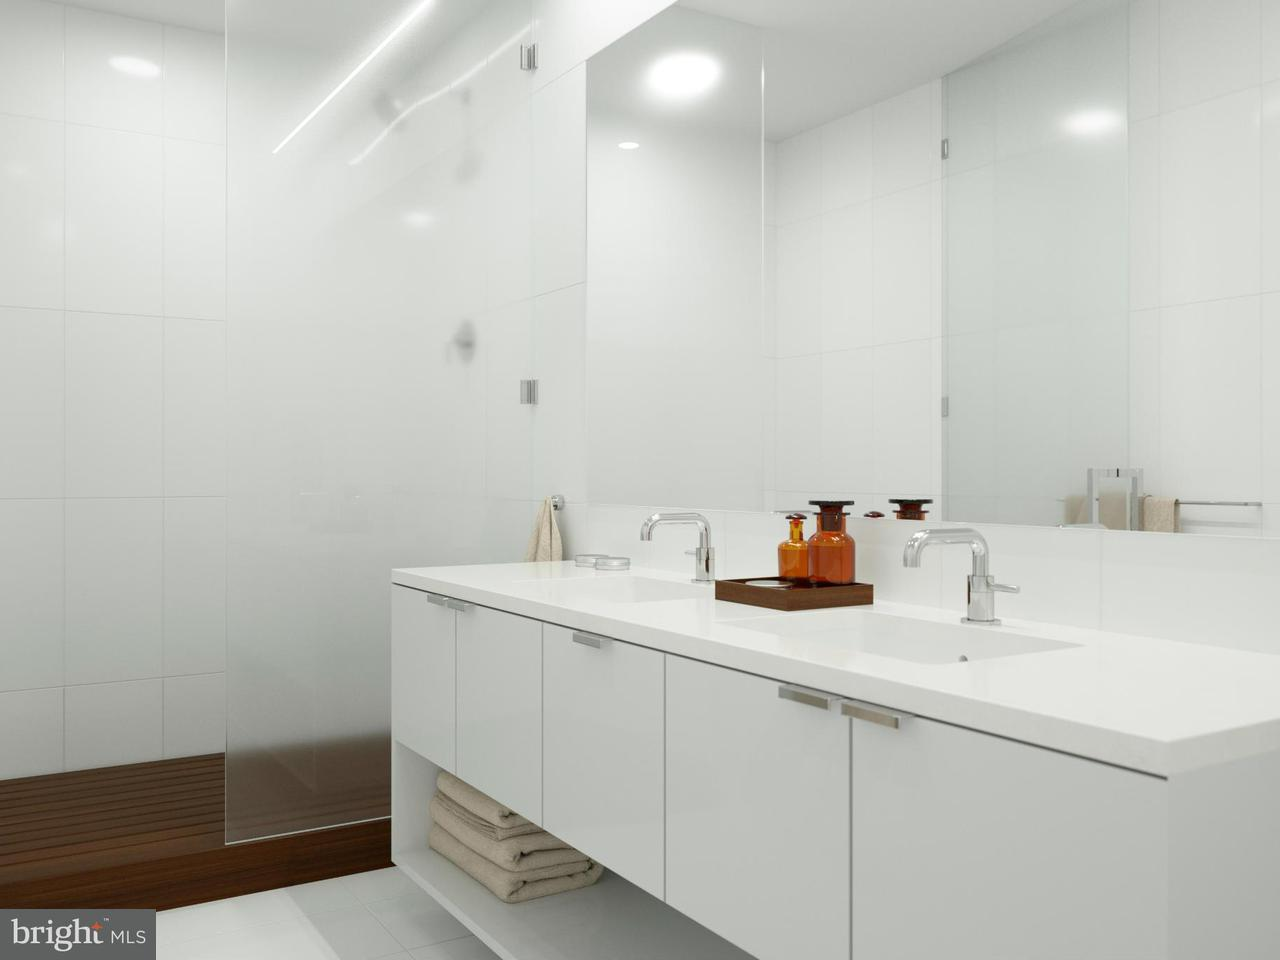 Additional photo for property listing at 1111 24th St Nw #95 1111 24th St Nw #95 华盛顿市, 哥伦比亚特区 20037 美国